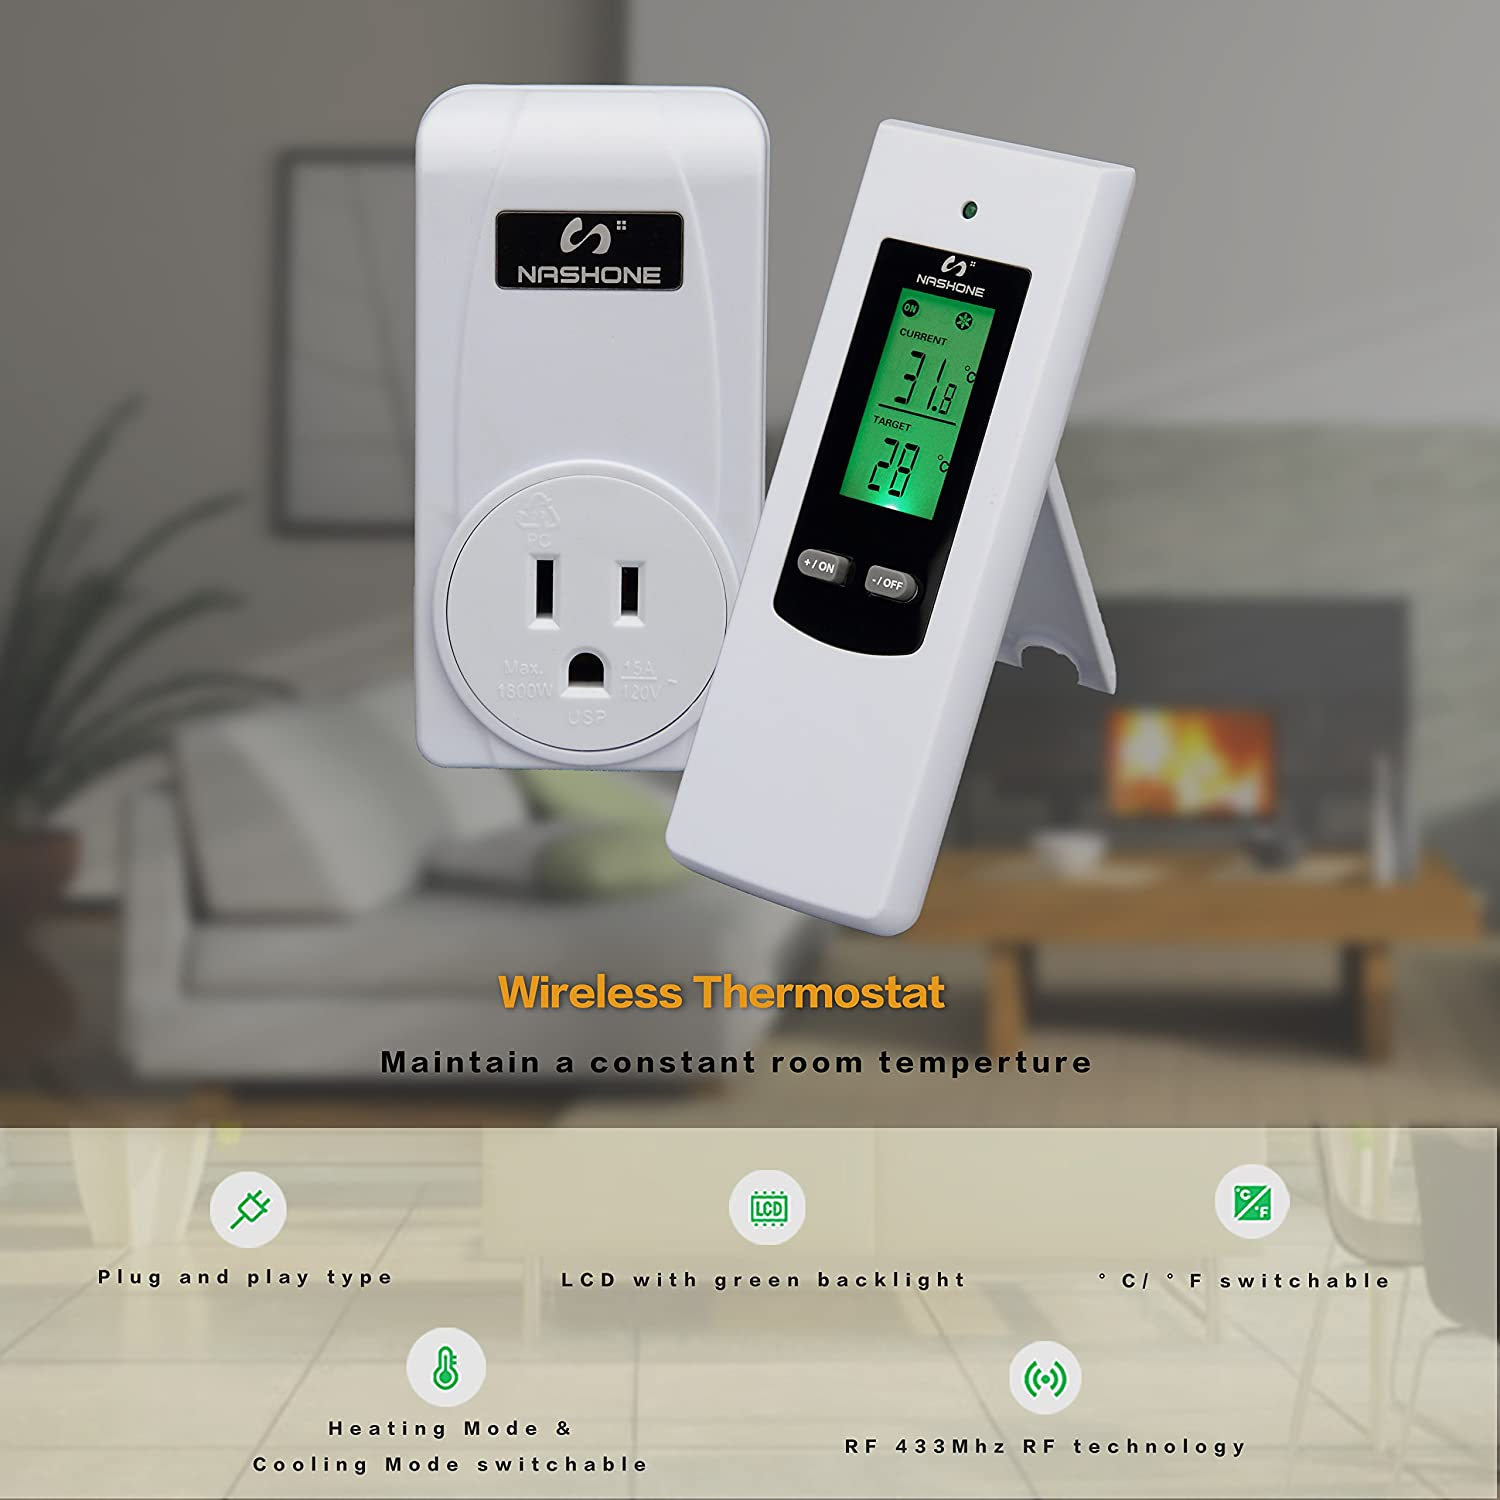 Nashone Wireless Temperature Controller Electric Thermostat With Remoteoperated Alarm Circuit Eeweb Community Remote Control Built In Temp Sensor 3 Prong Plug Lcd Display Heating Cooling Modewirelss